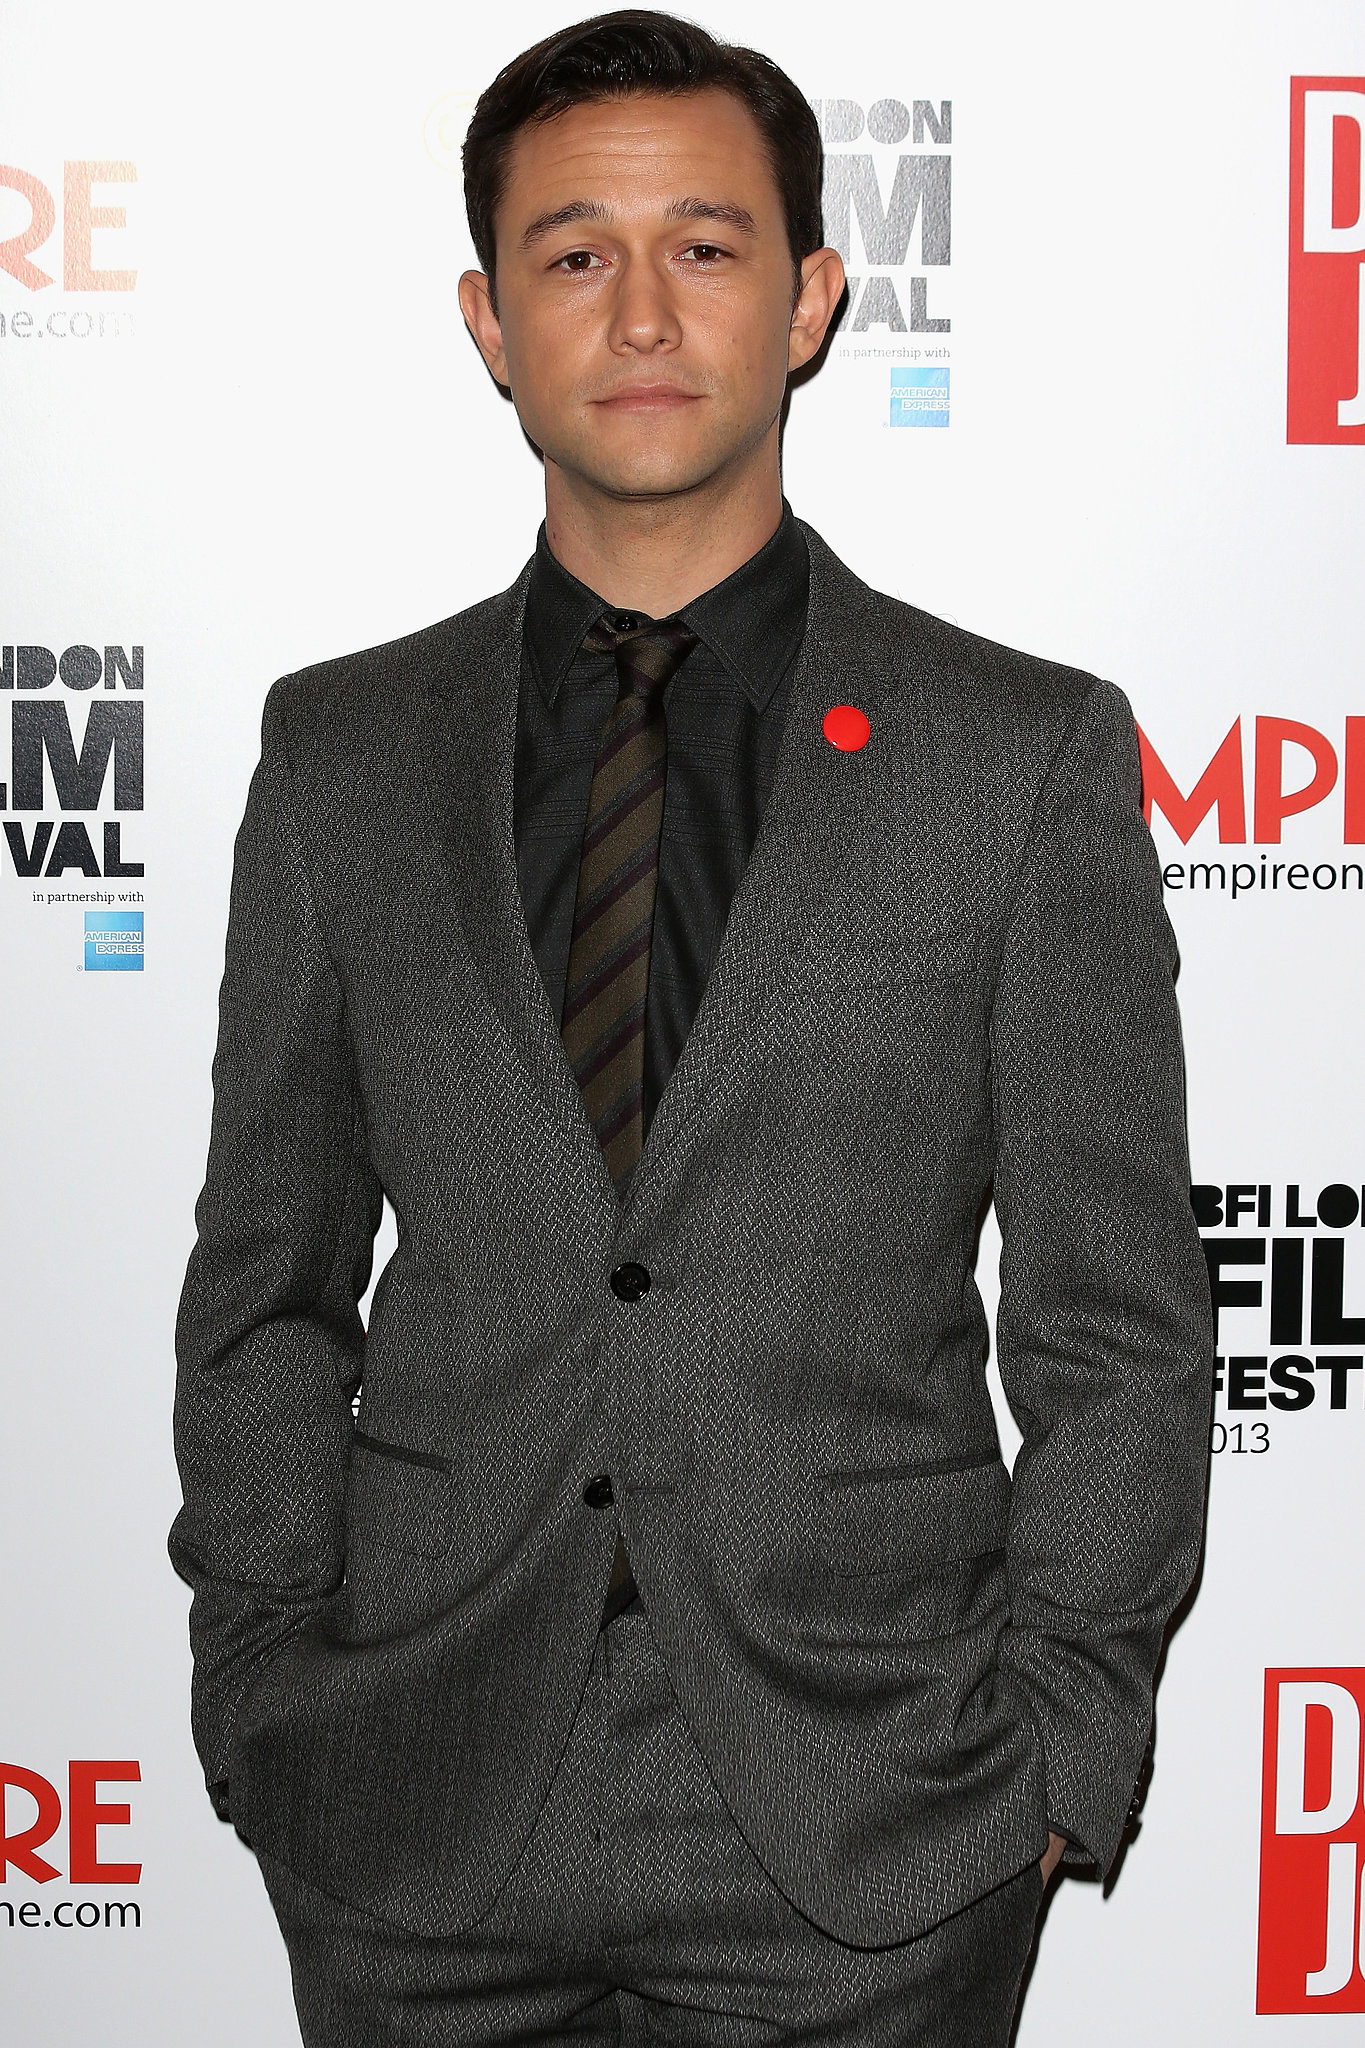 John Krasinski, Emily Blunt, and Joseph Gordon Levitt will voice The Wind Rises, a Japanese animation film currently casting voices for the US version. Stanley Tucci, Martin Short, Mandy Patinkin, William H. Macy, Mae Whitman, Darren Criss, and Elijah Wood are among those also signed on to lend their voices to the film.